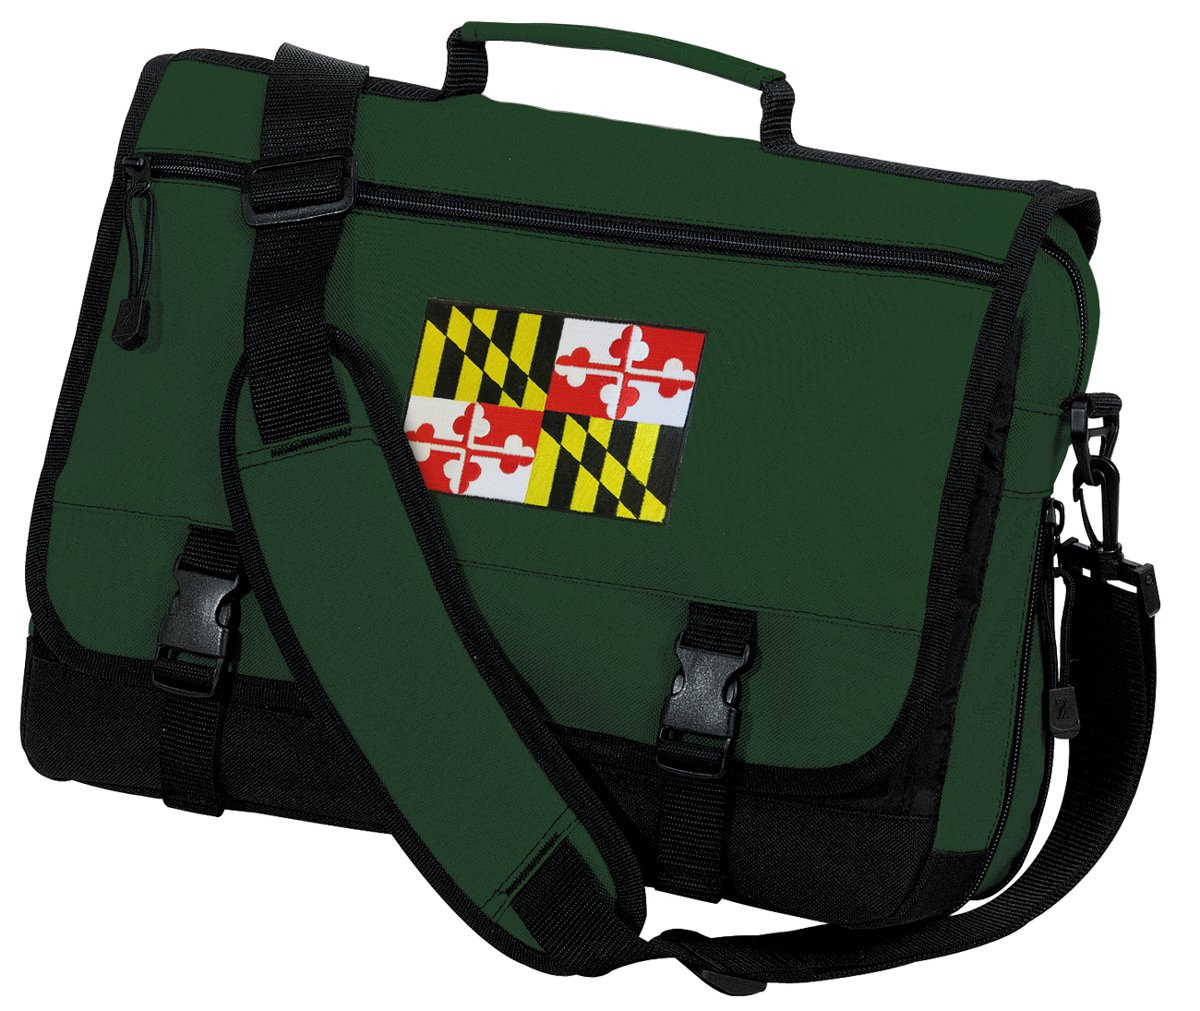 Maryland Flag Laptop Bag Maryland Messenger Bag by Broad Bay (Image #1)